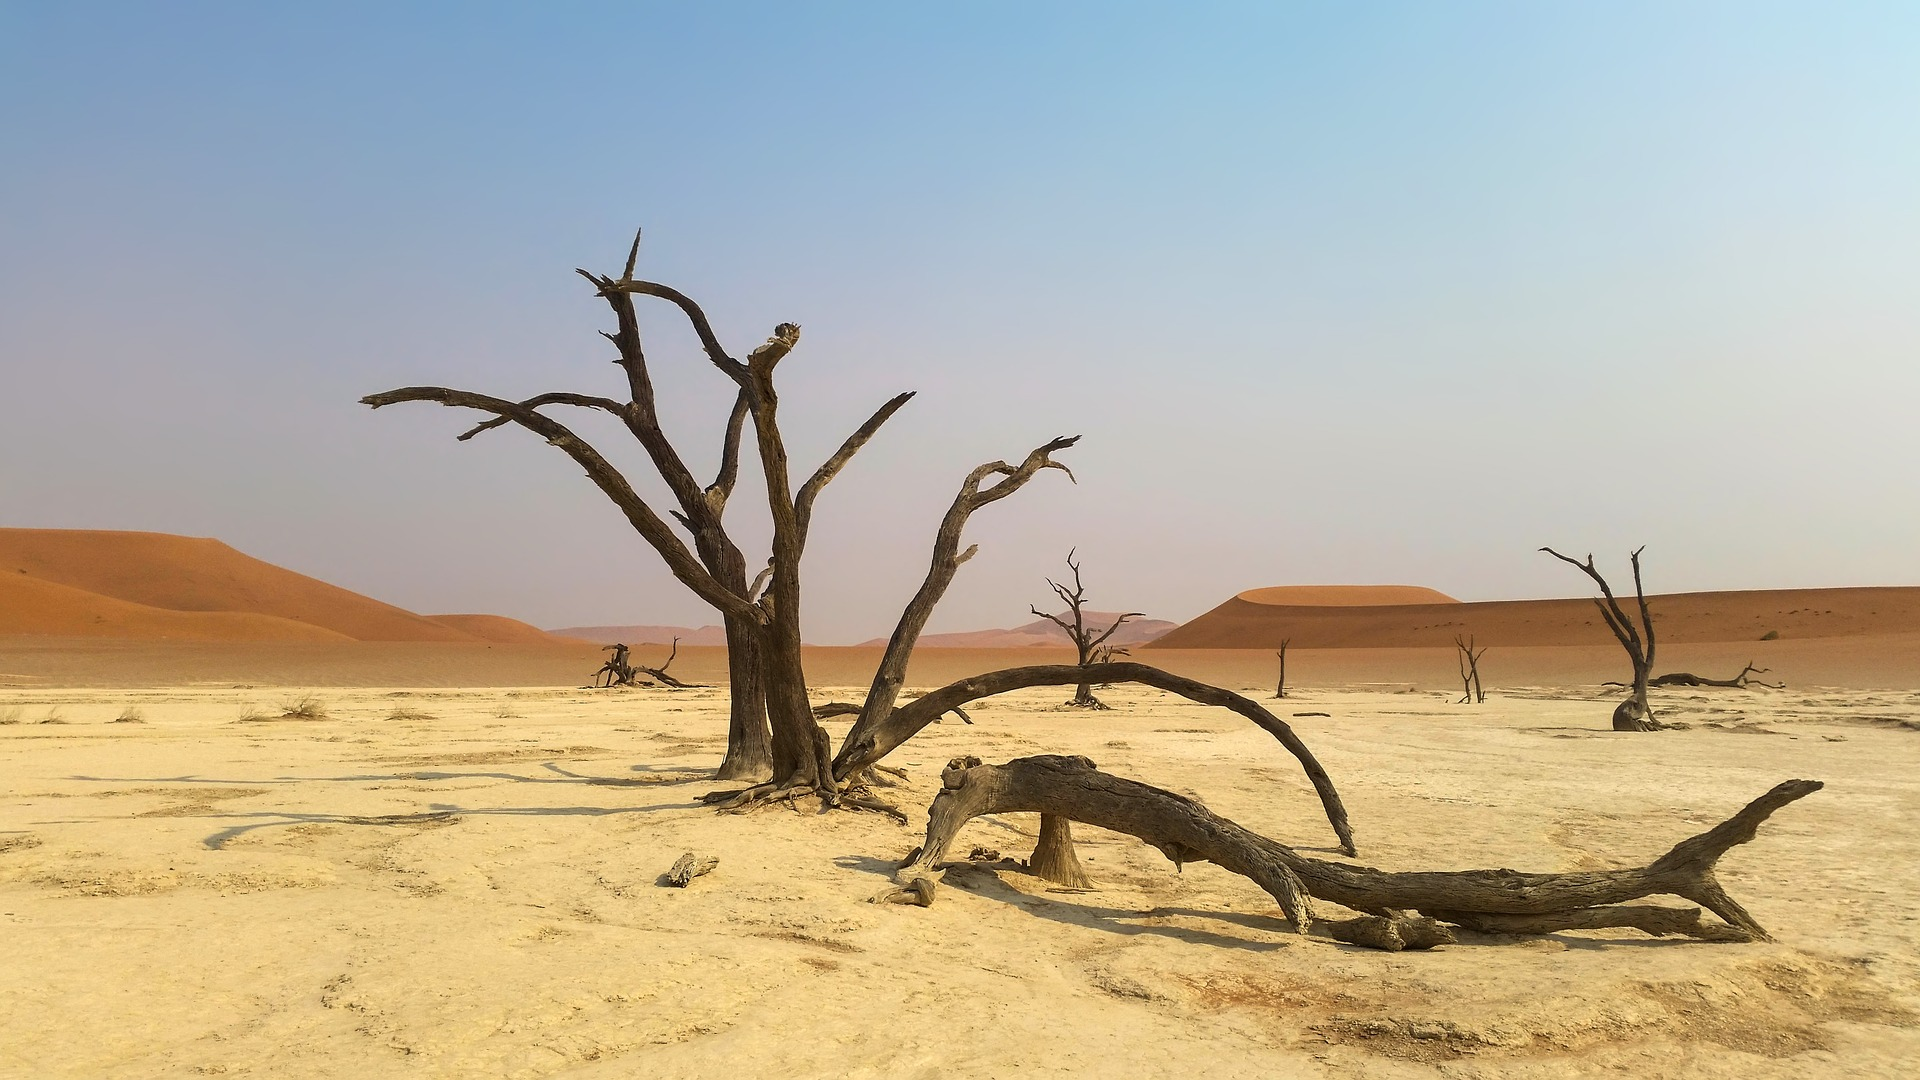 Image: Dry, dead tree in the middle of the sandy, desolate, Namib Desert